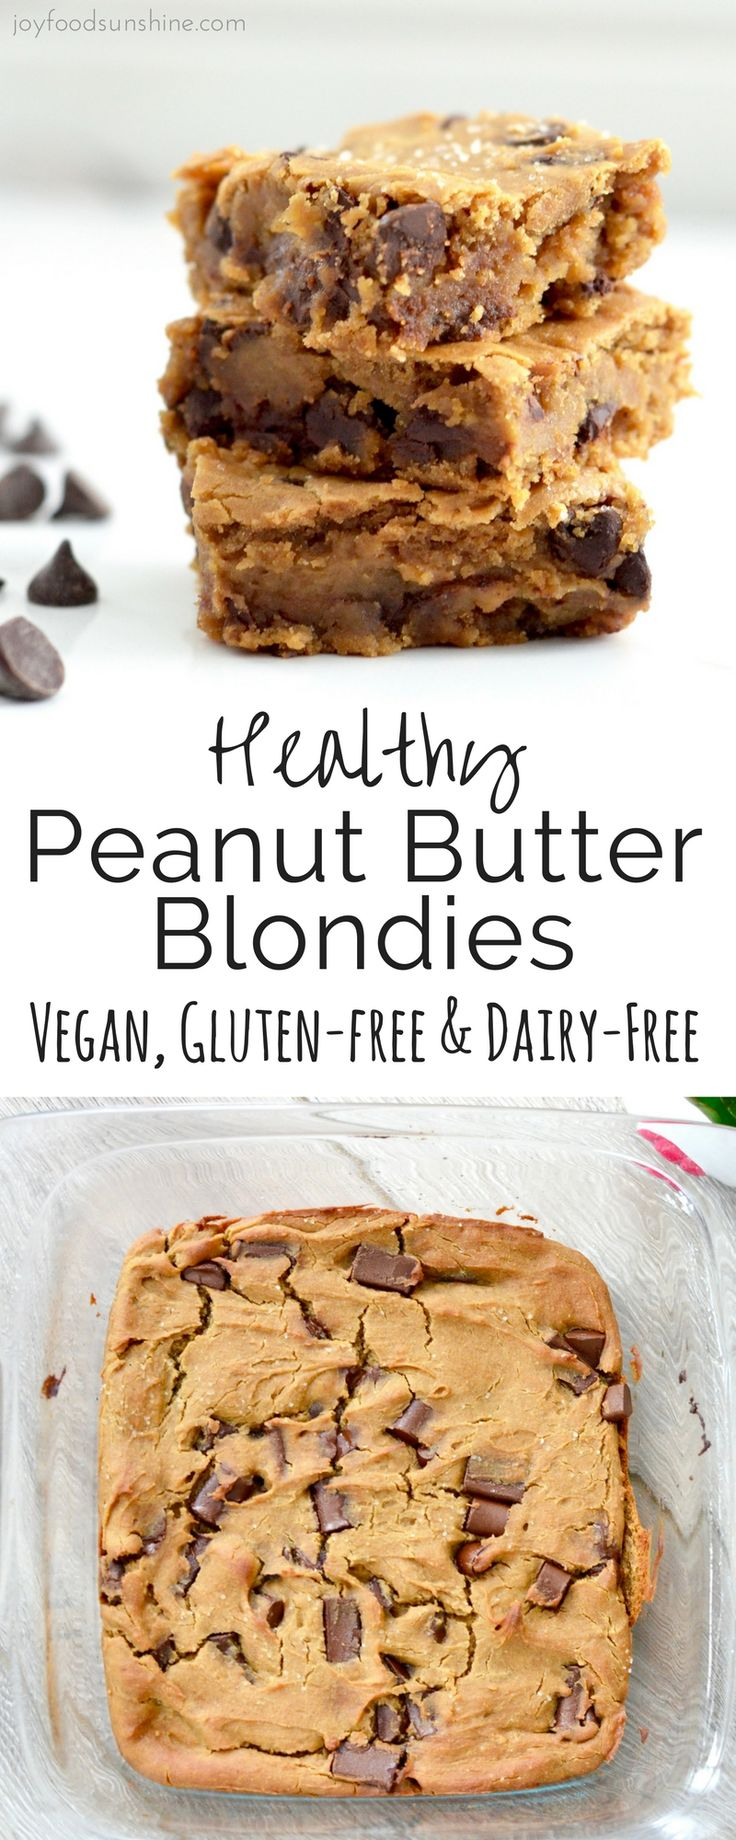 These Healthy Peanut Butter Blondies are gluten-free, dairy-free, refined-sugar free and vegan friendly! Made with chickpeas but you'd never know it! It's the perfect healthy dessert recipe that you can feel great about indulging in!